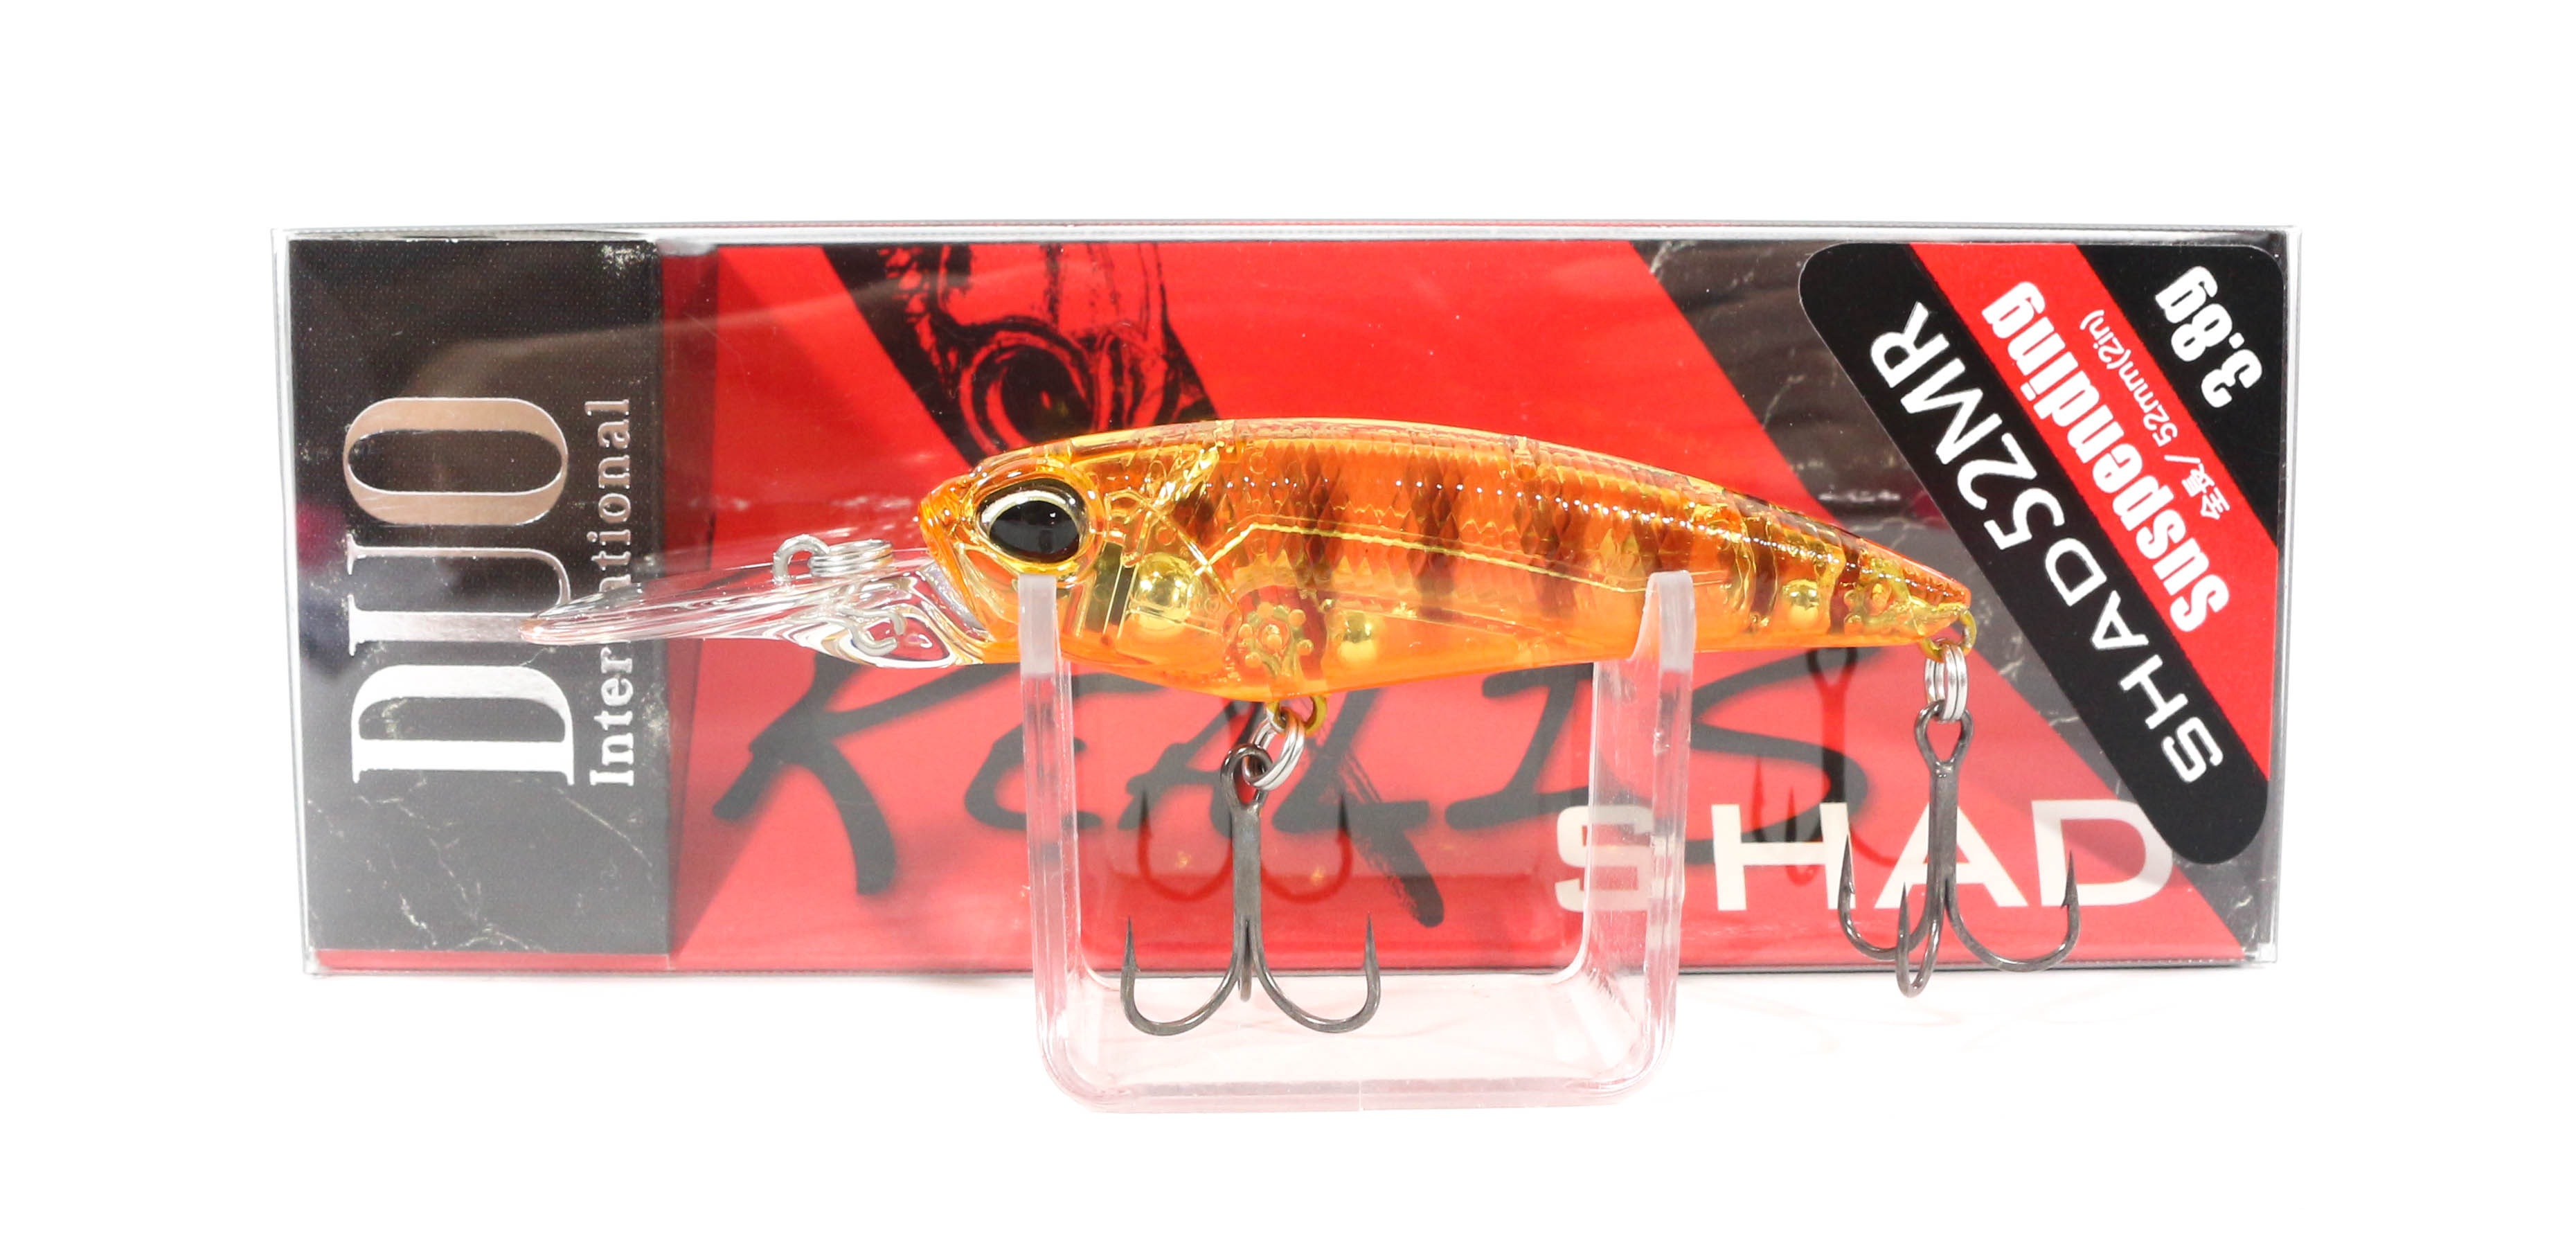 Duo Realis Shad 52 MR Suspend Lure CCC3181 (6726)